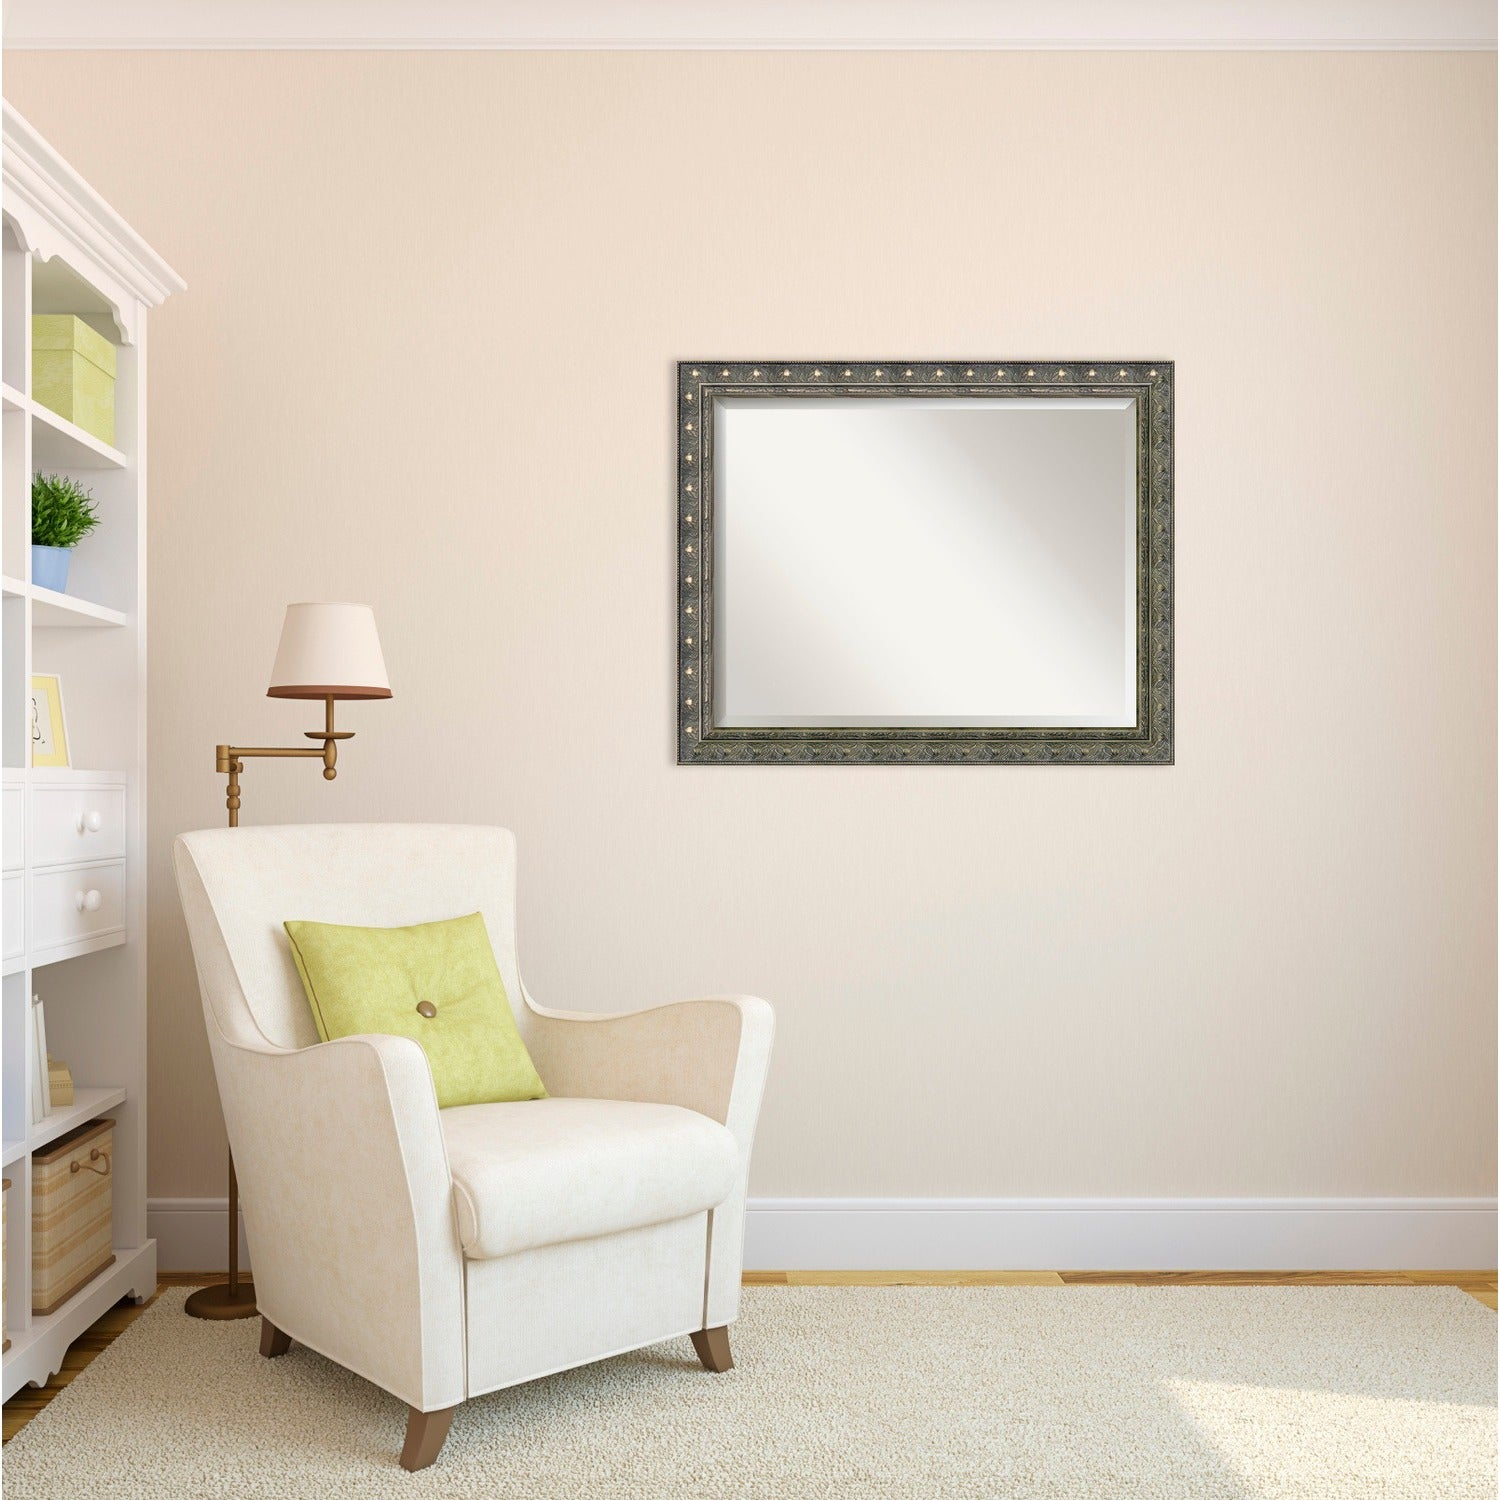 Shop Wall Mirror Large, Barcelona Champagne 32 x 26-inch - Pewter ...